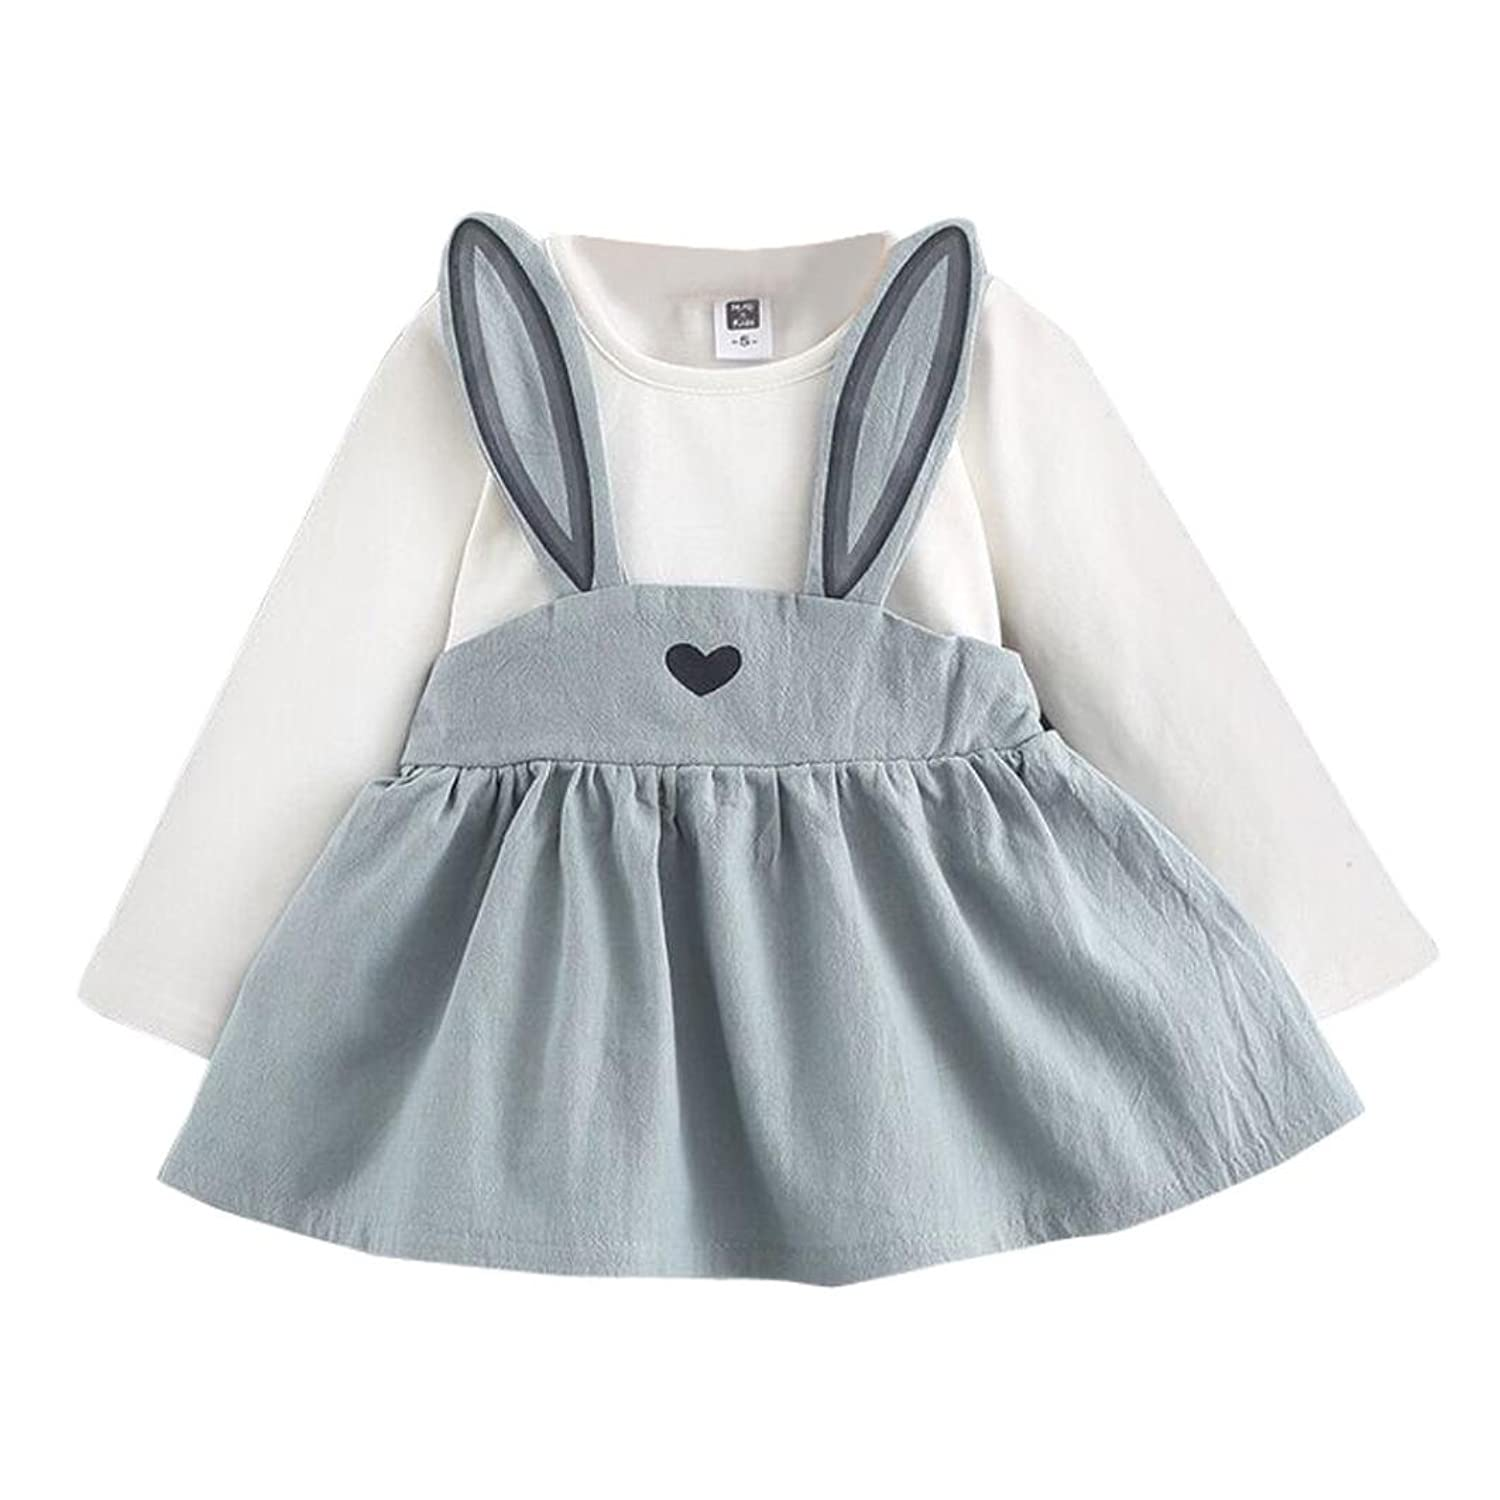 Dresses - Baby: Clothing: Amazon.co.uk